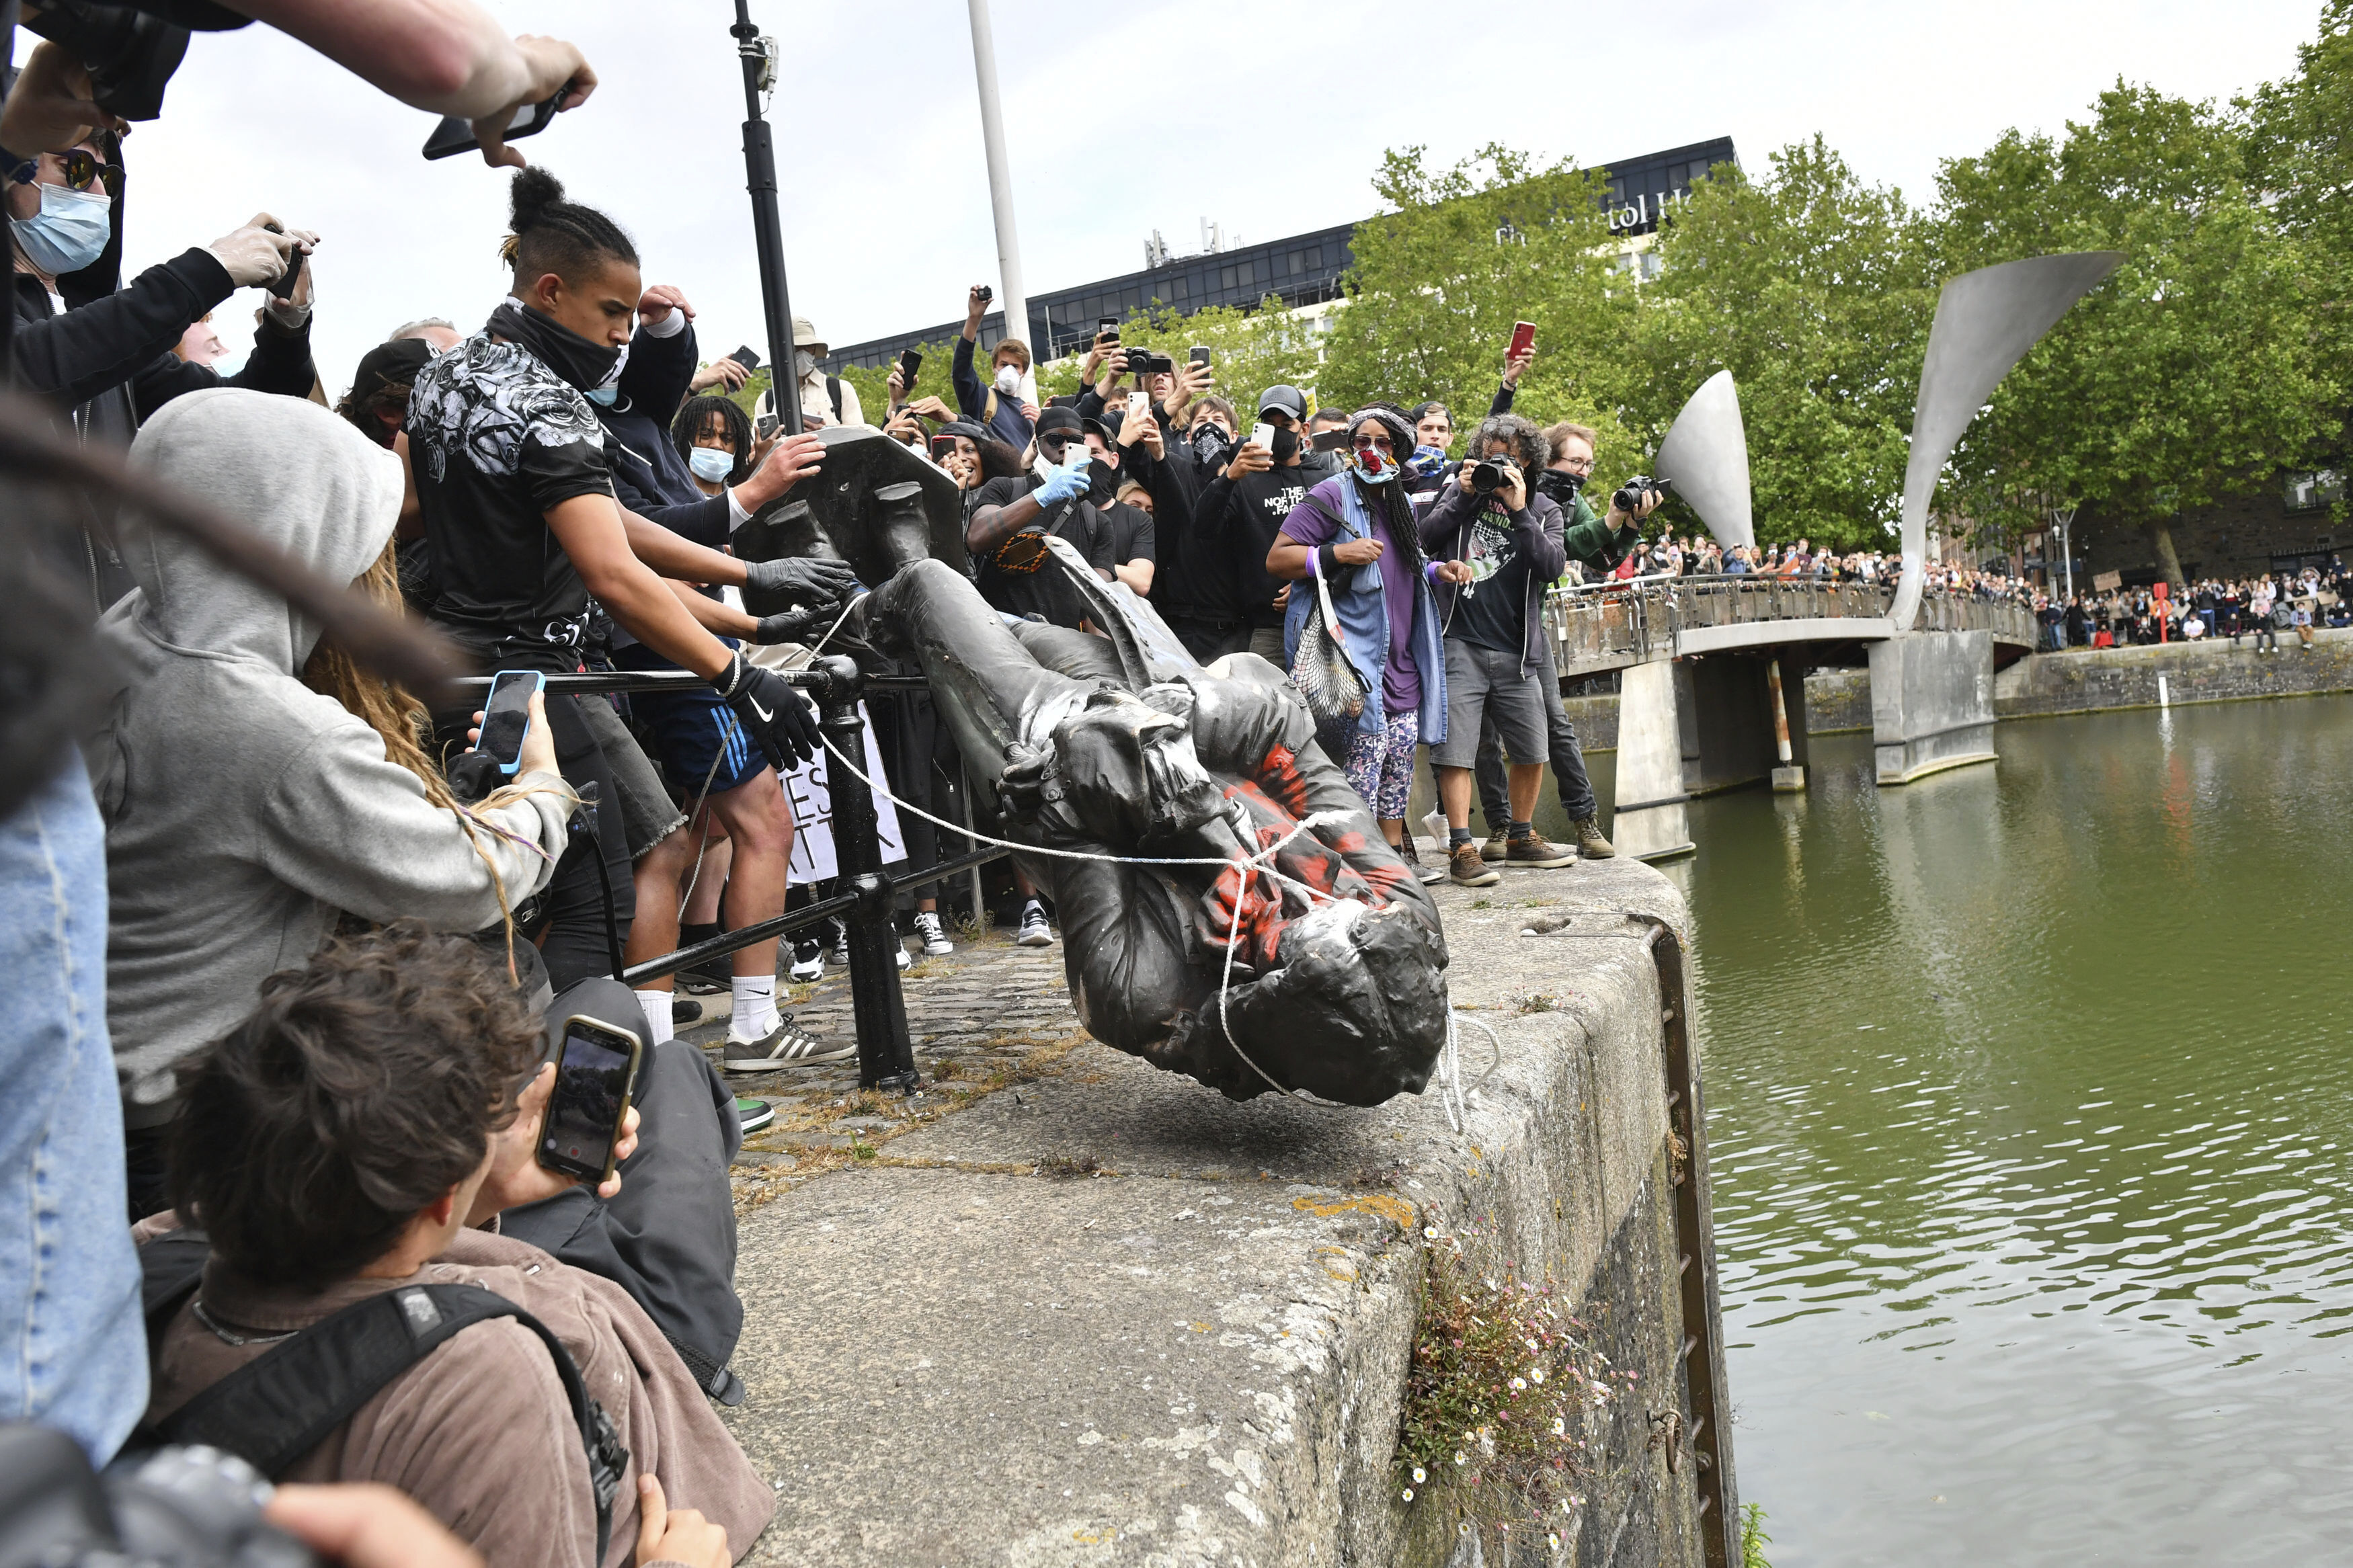 Protesters throw a statue of slave trader Edward Colston into Bristol harbour, during a Black Lives Matter protest rally, in Bristol, England.